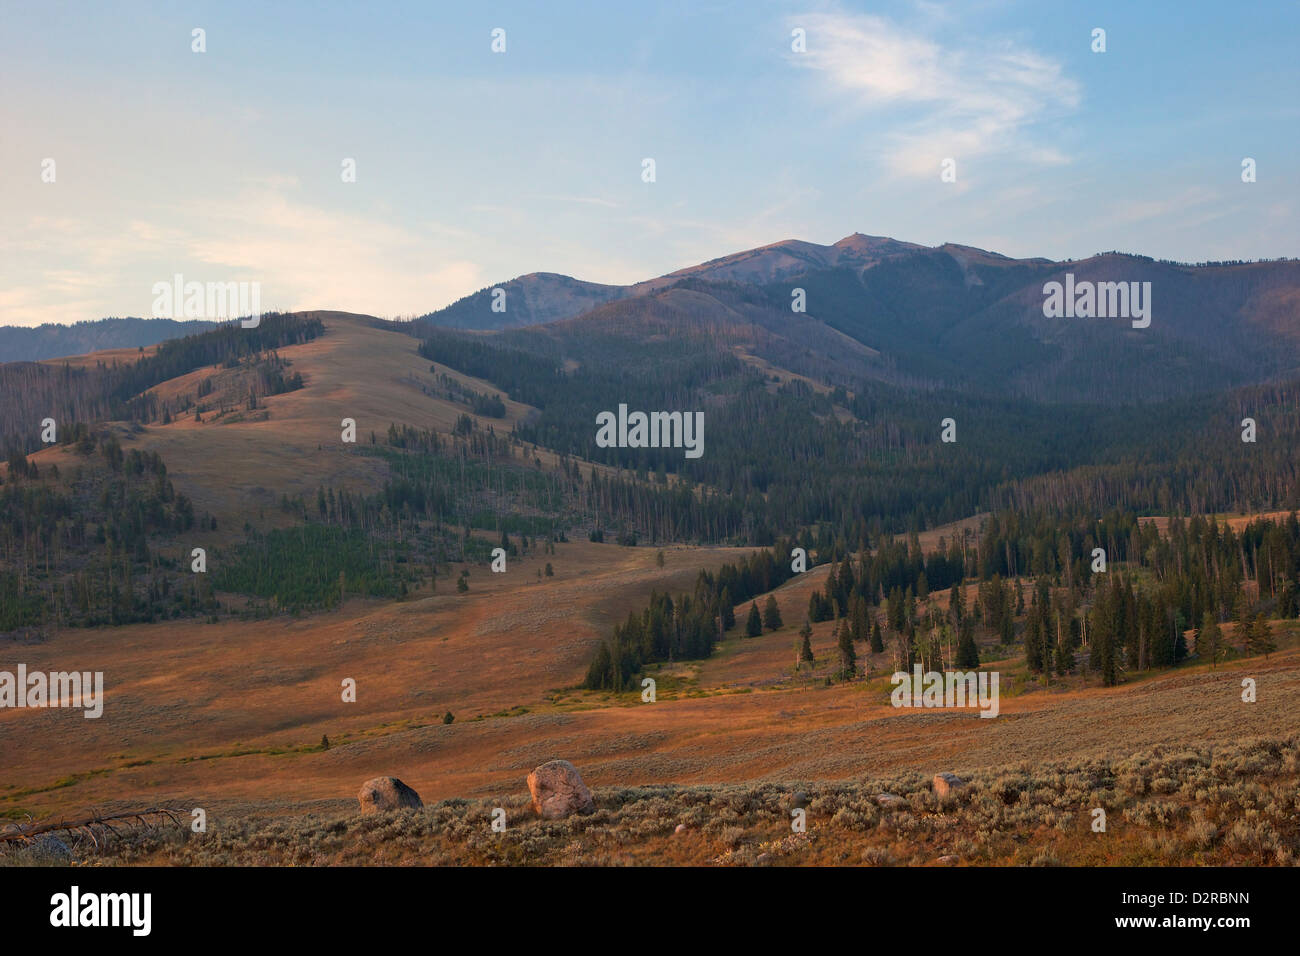 Mount Washburn in early morning light, Yellowstone National Park, Wyoming, USA - Stock Image